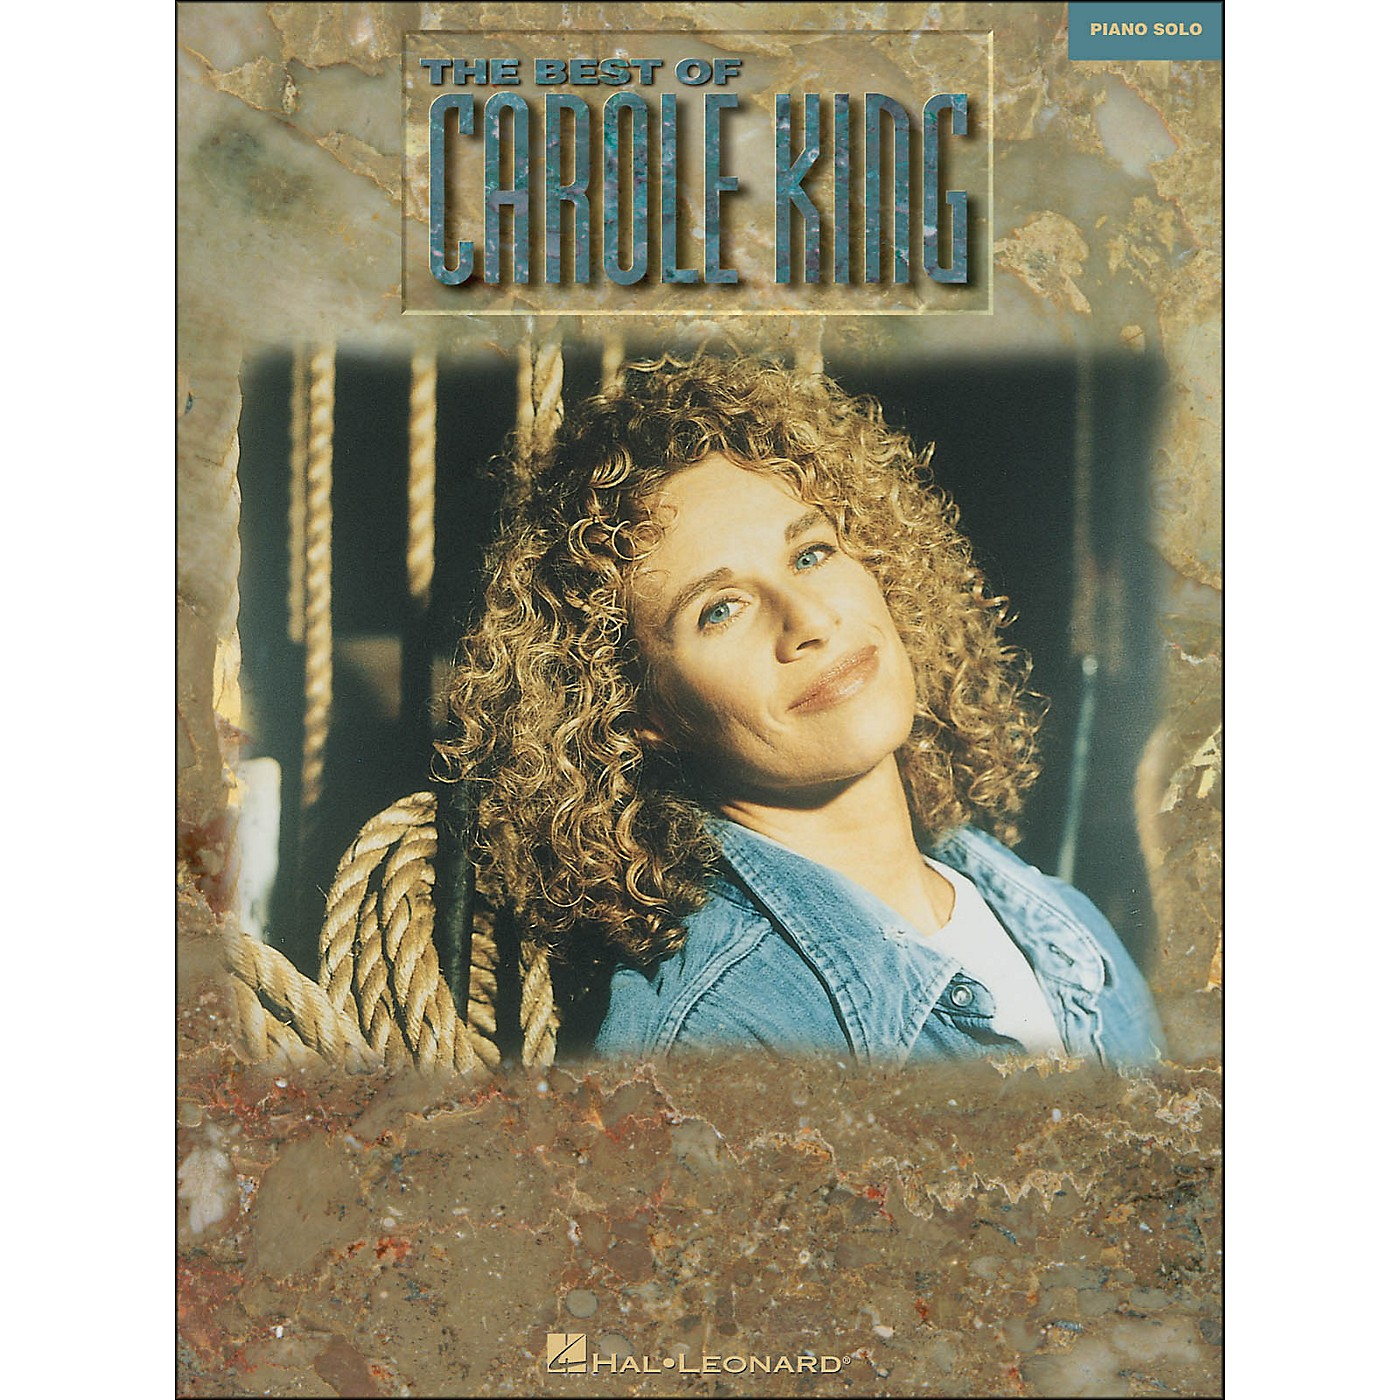 Hal Leonard The Best Of Carole King arranged for piano solo thumbnail